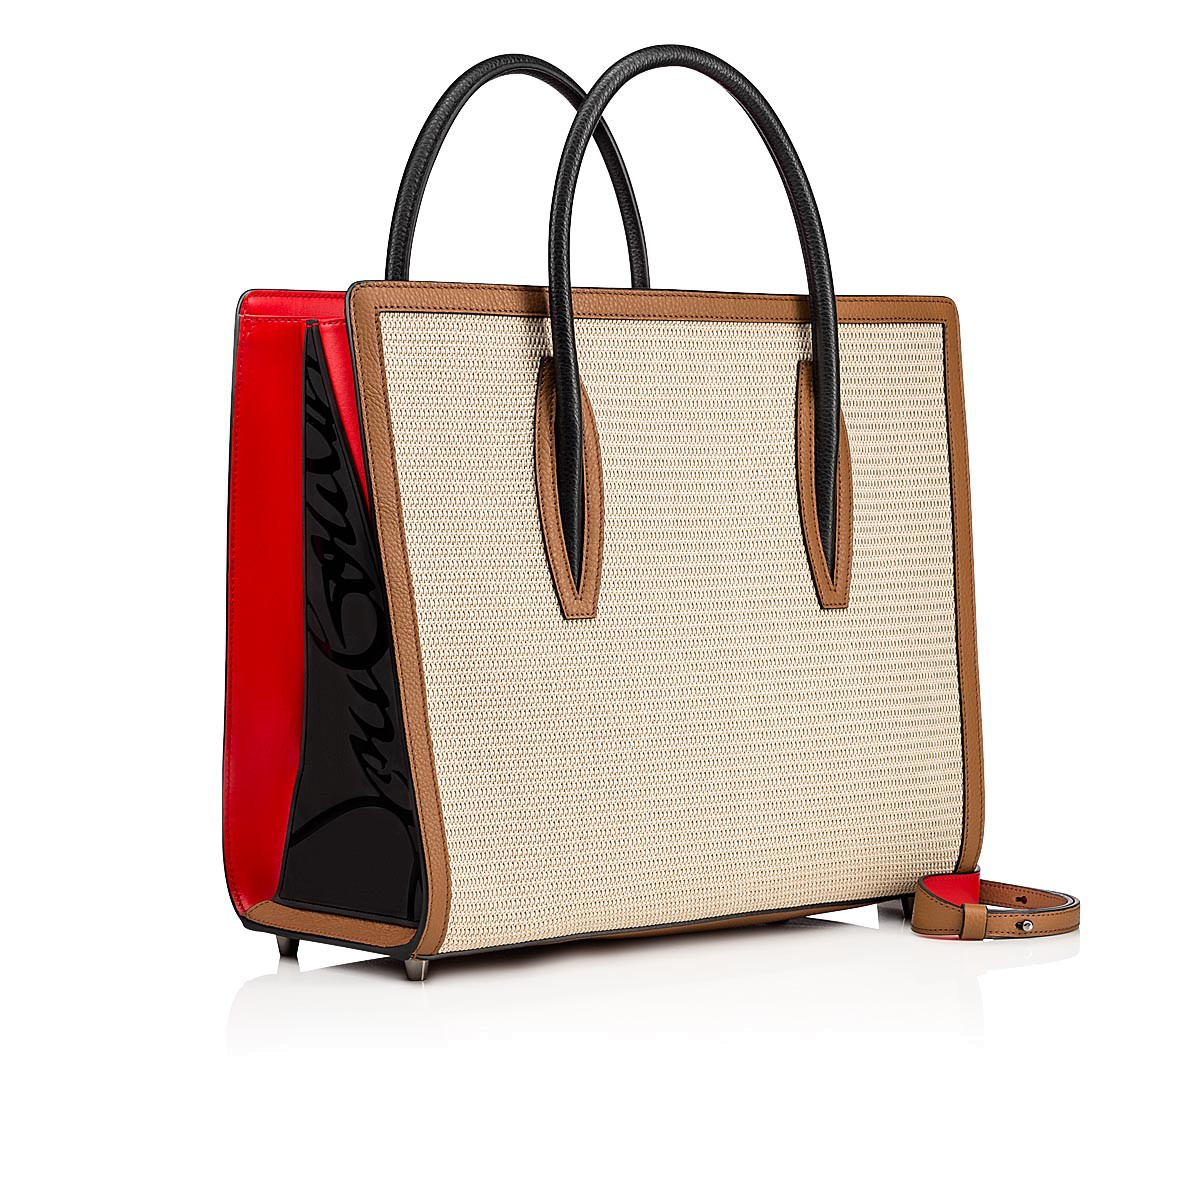 Bags - Paloma S Large - Christian Louboutin